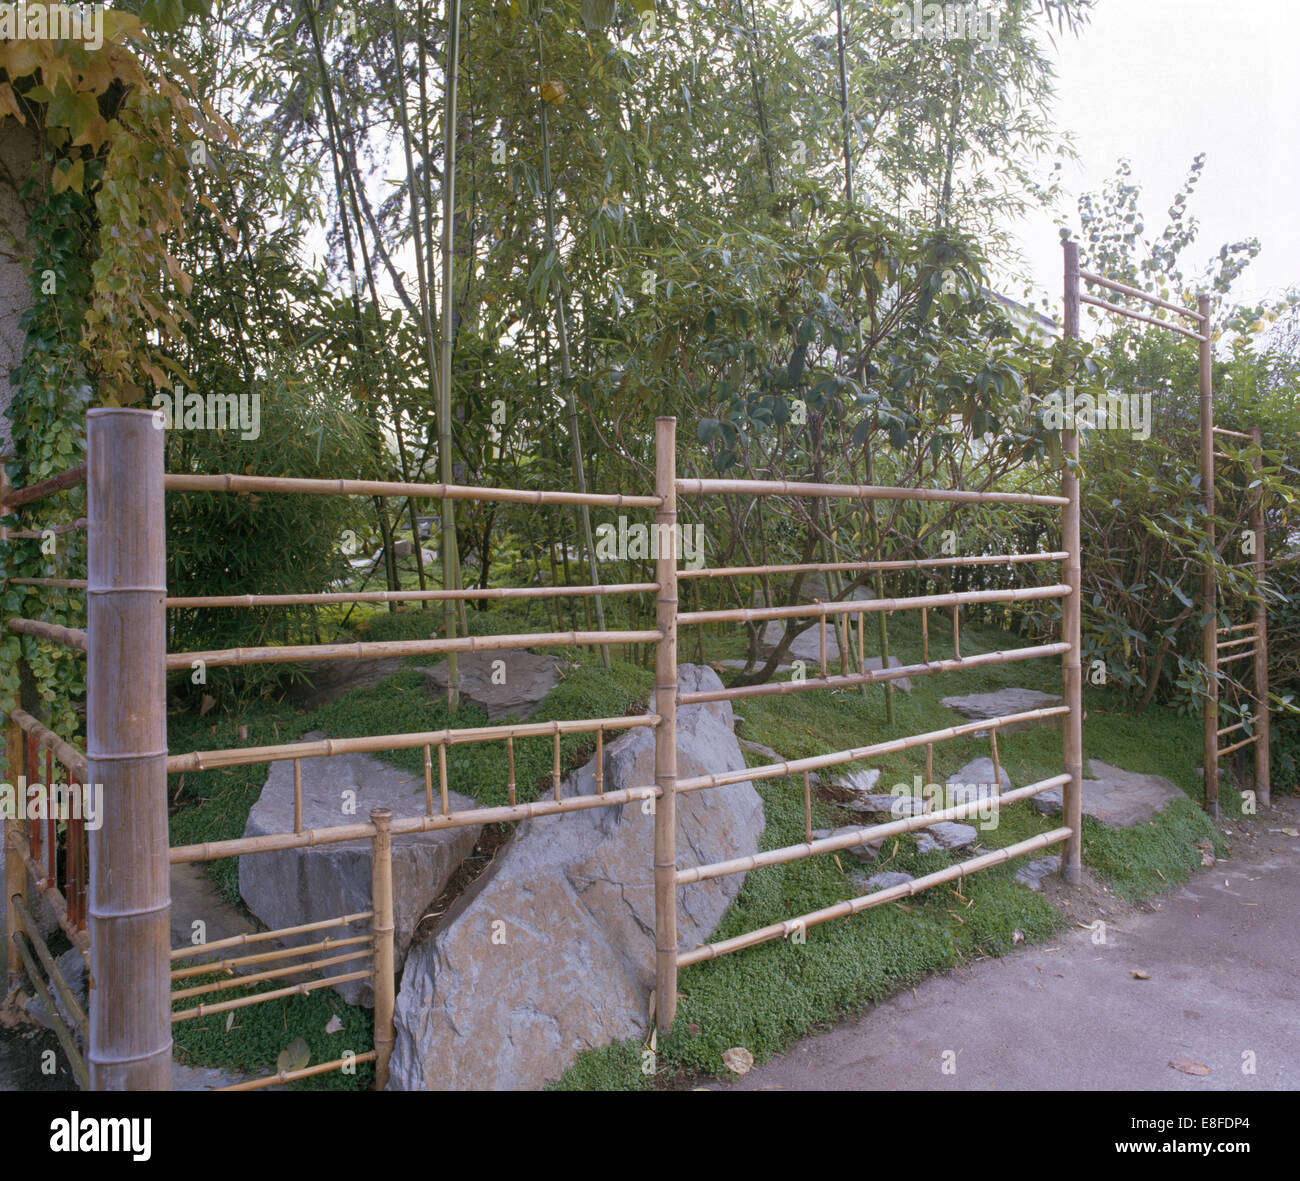 bamboo fence and natural rocks below small trees in japanese style stock photo royalty free. Black Bedroom Furniture Sets. Home Design Ideas